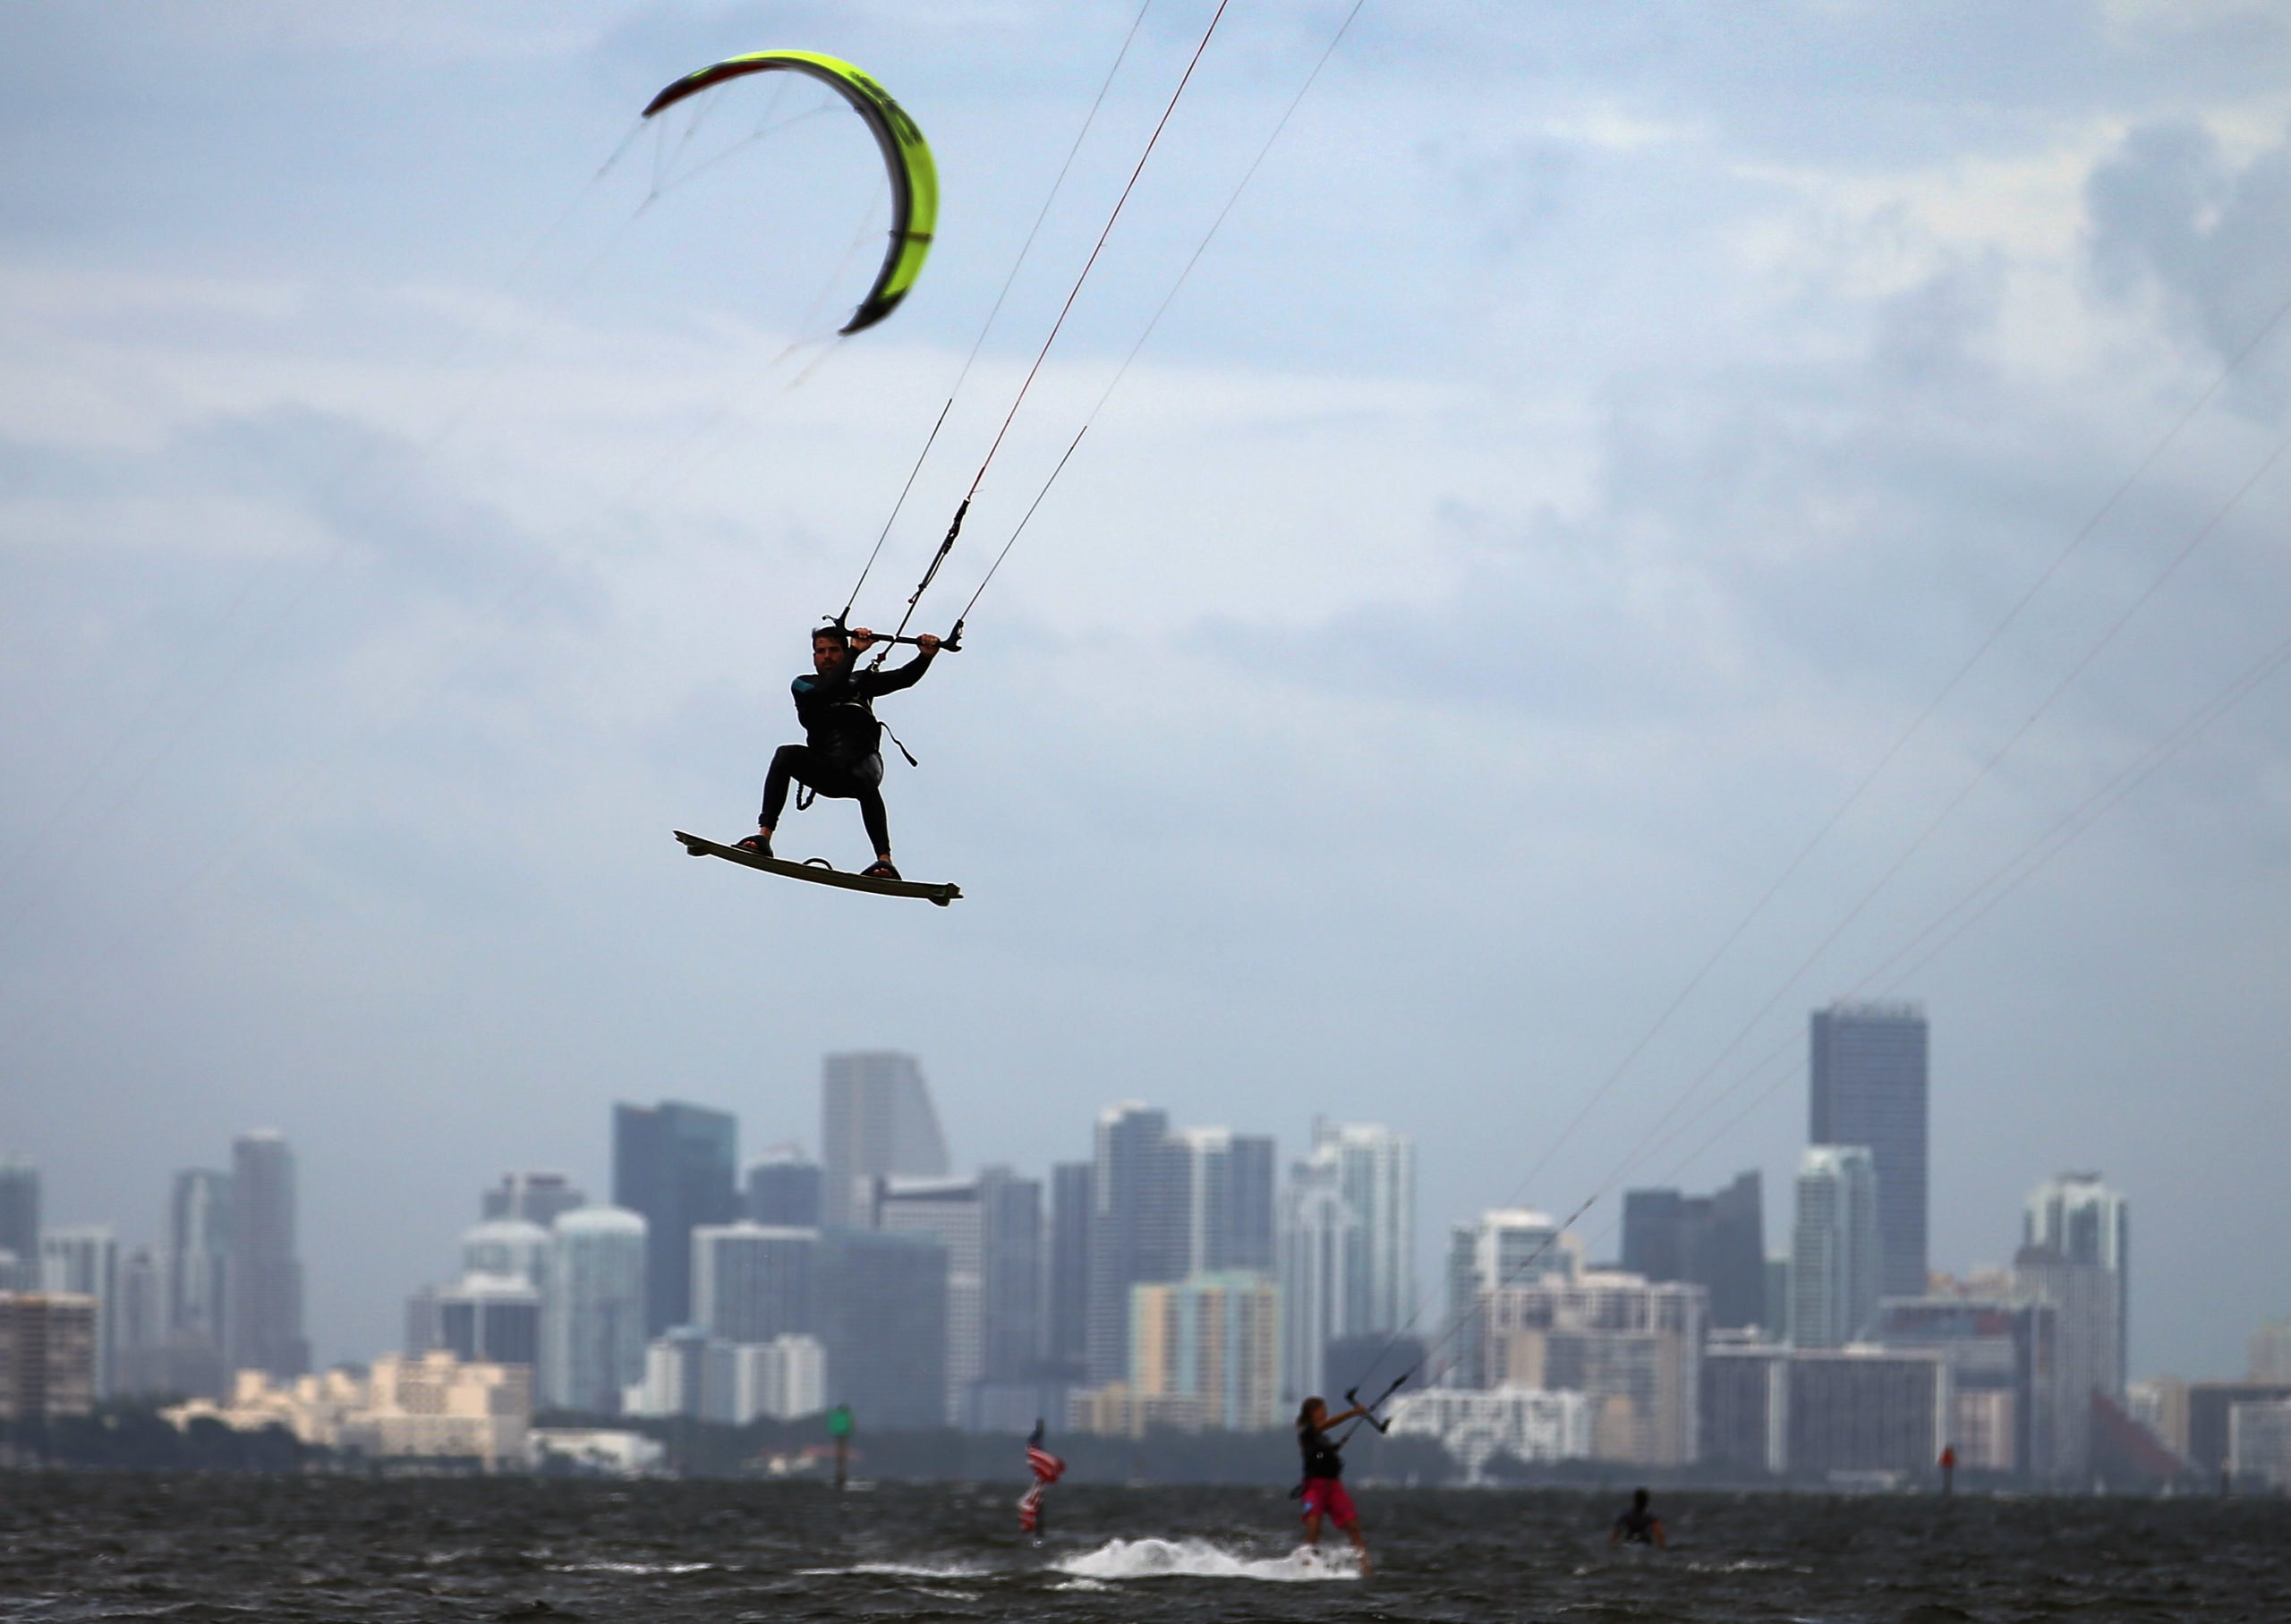 Santiago Porteiro takes advantage of the winds from the outerbands of Hurricane Sandy to kite surf on October 24, 2012 in Miami, Florida. (Photo by Joe Raedle/Getty Images)